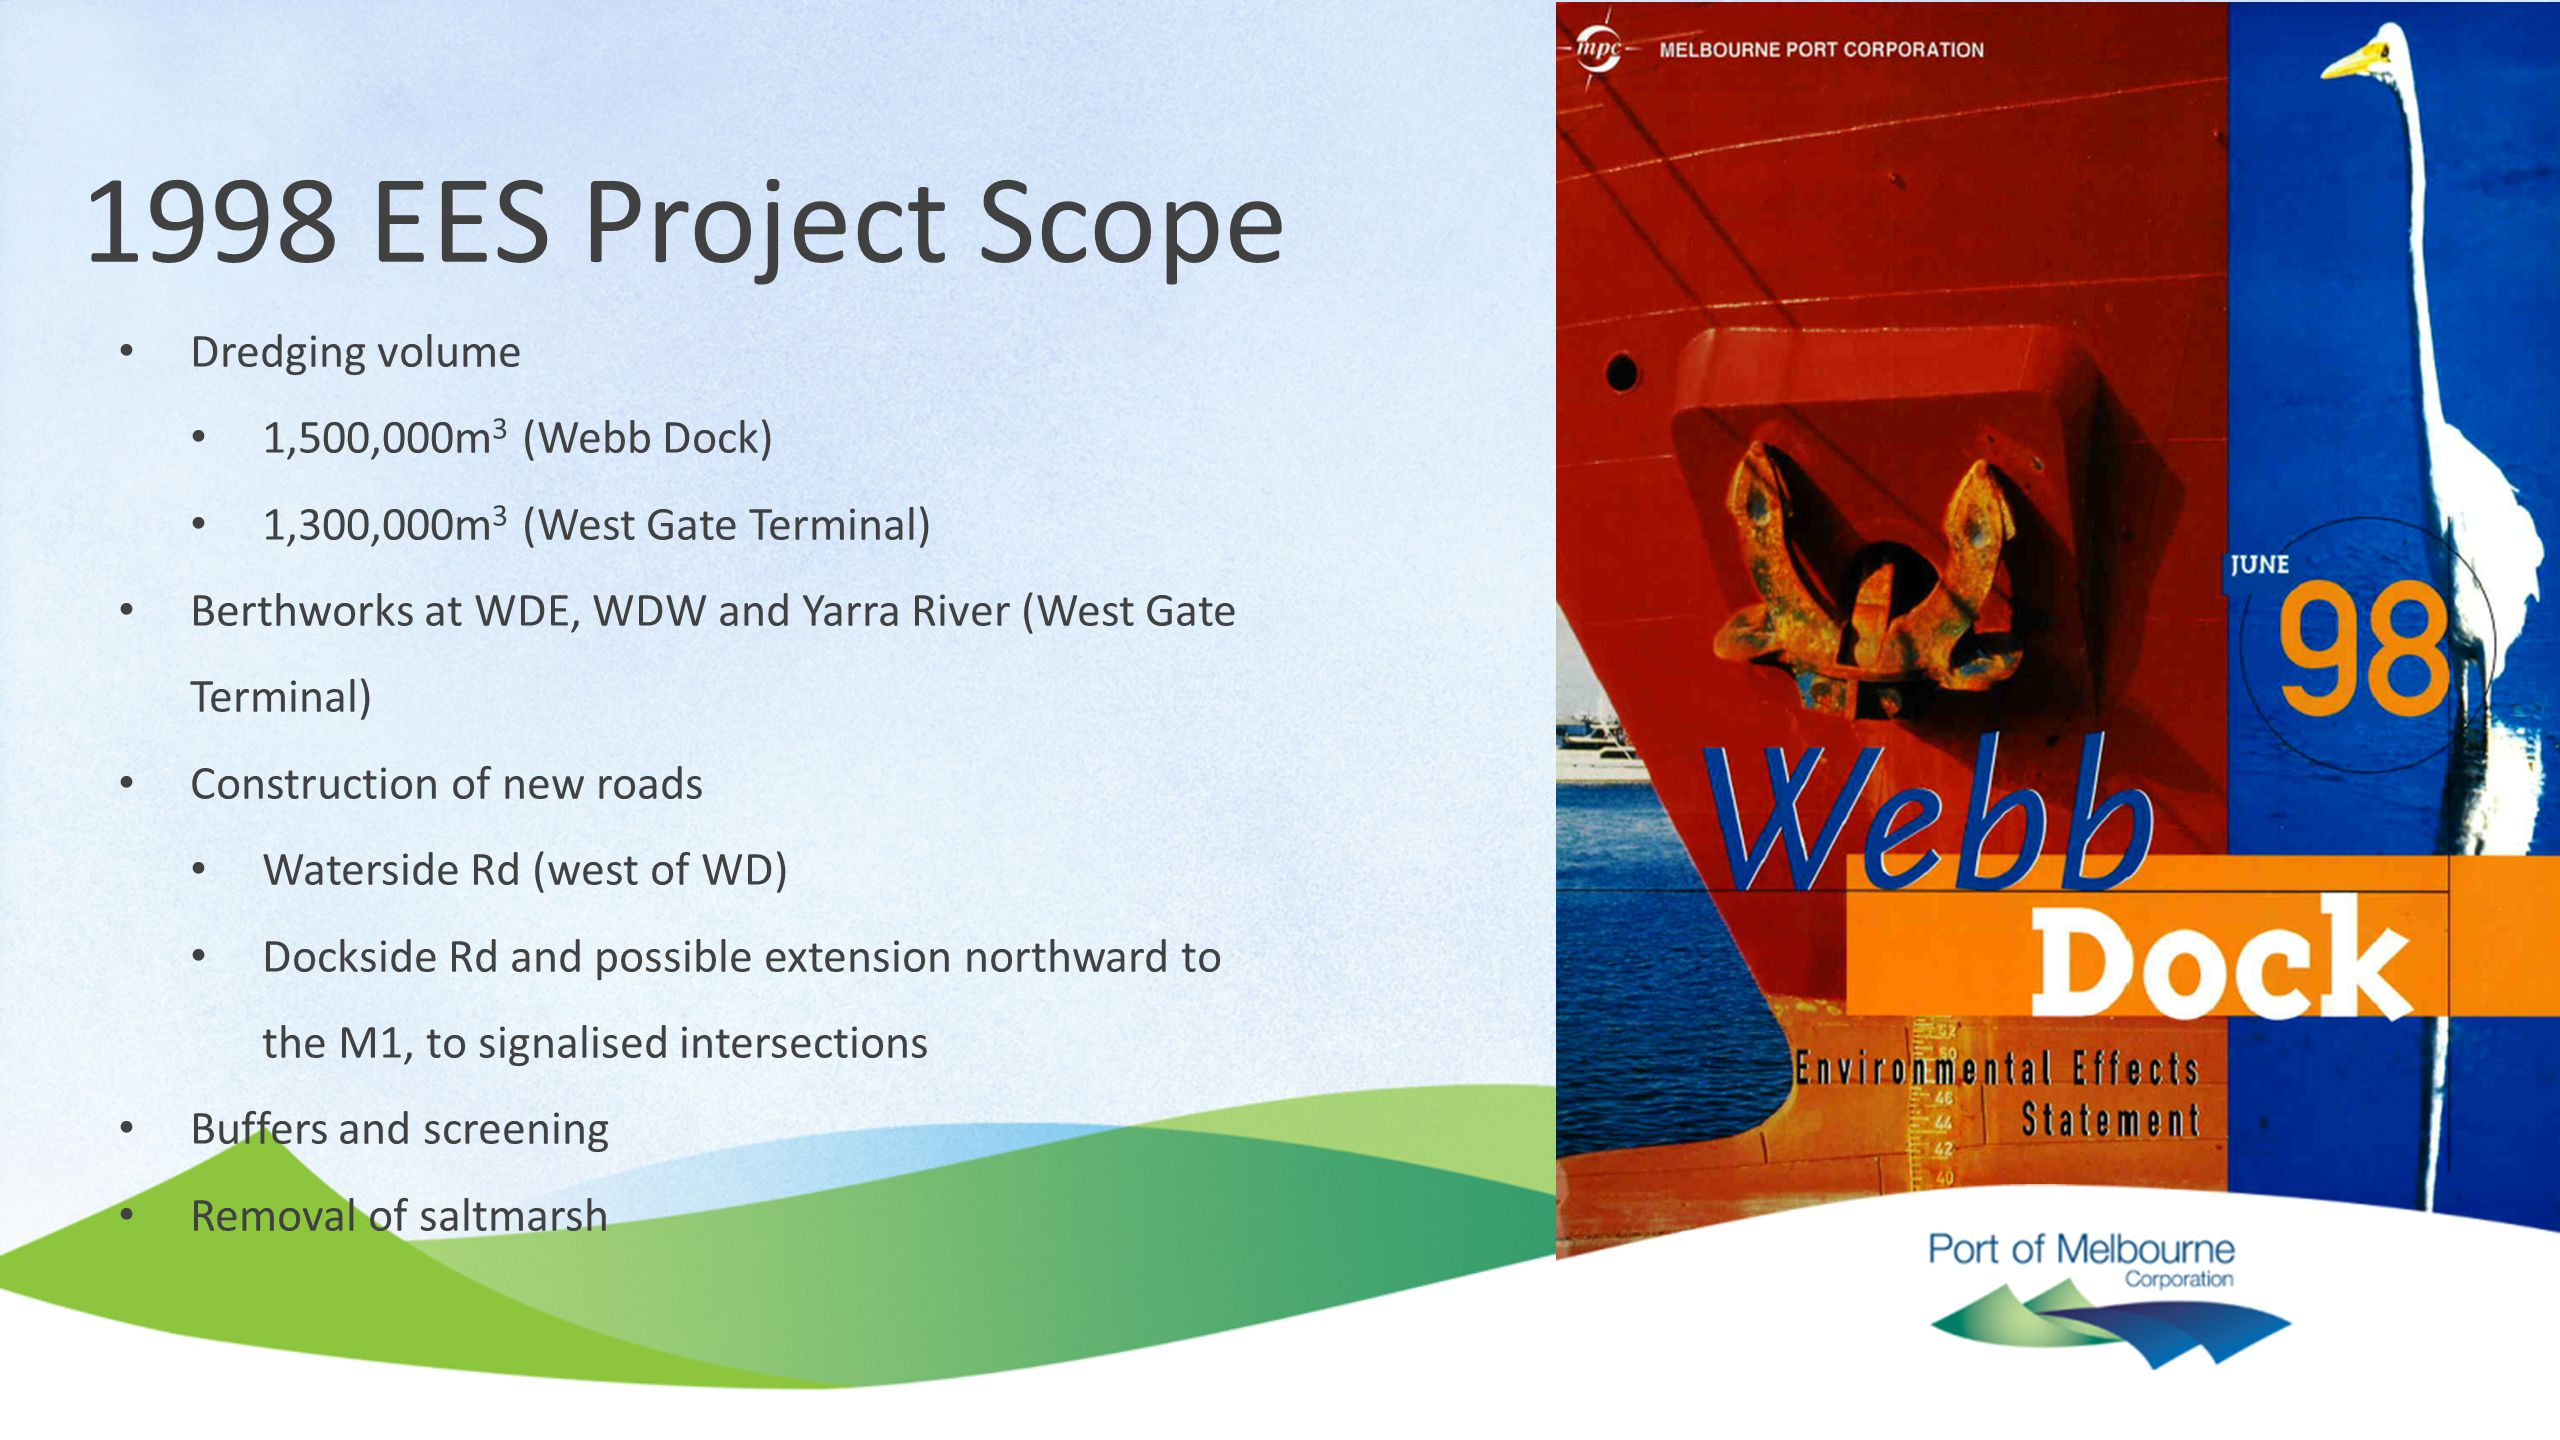 1998 EES Project Scope Dredging volume 1,500,000m 3 (Webb Dock) 1,300,000m 3 (West Gate Terminal) Berthworks at WDE, WDW and Yarra River (West Gate Te